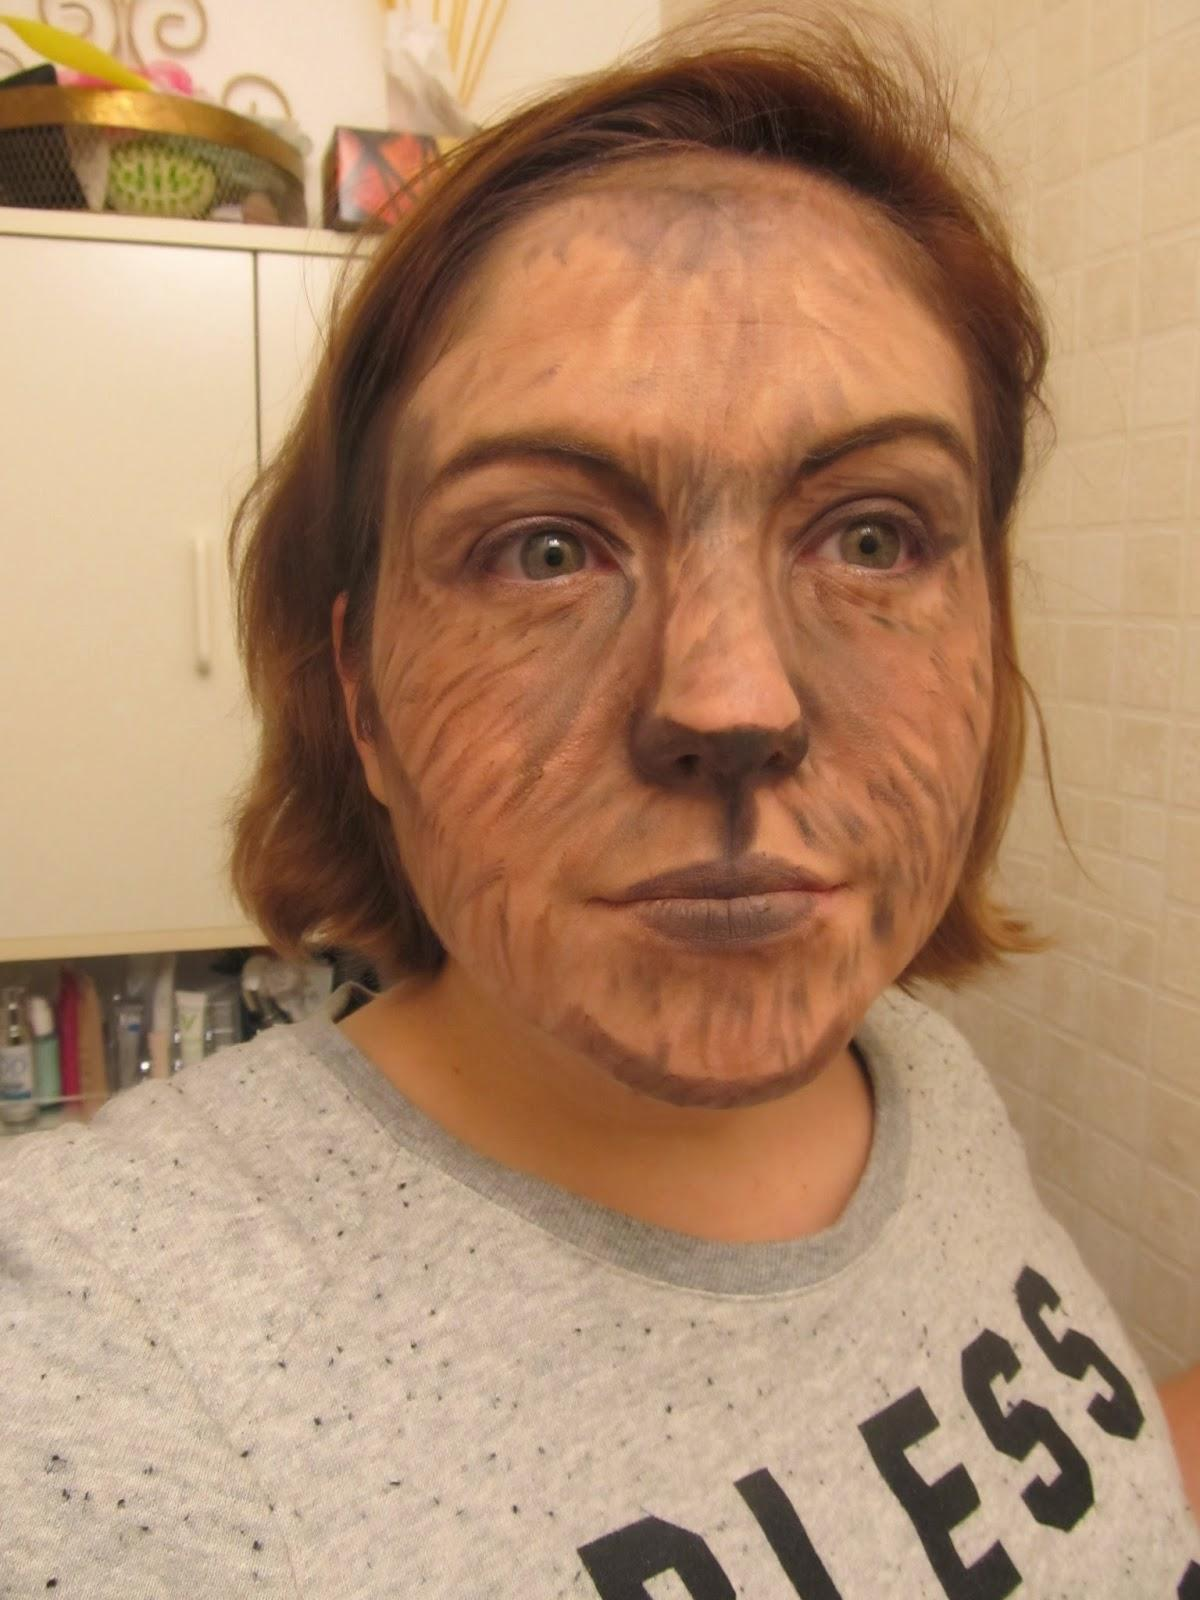 Maquillage halloween femme facile a faire diable - Maquillage loup facile ...